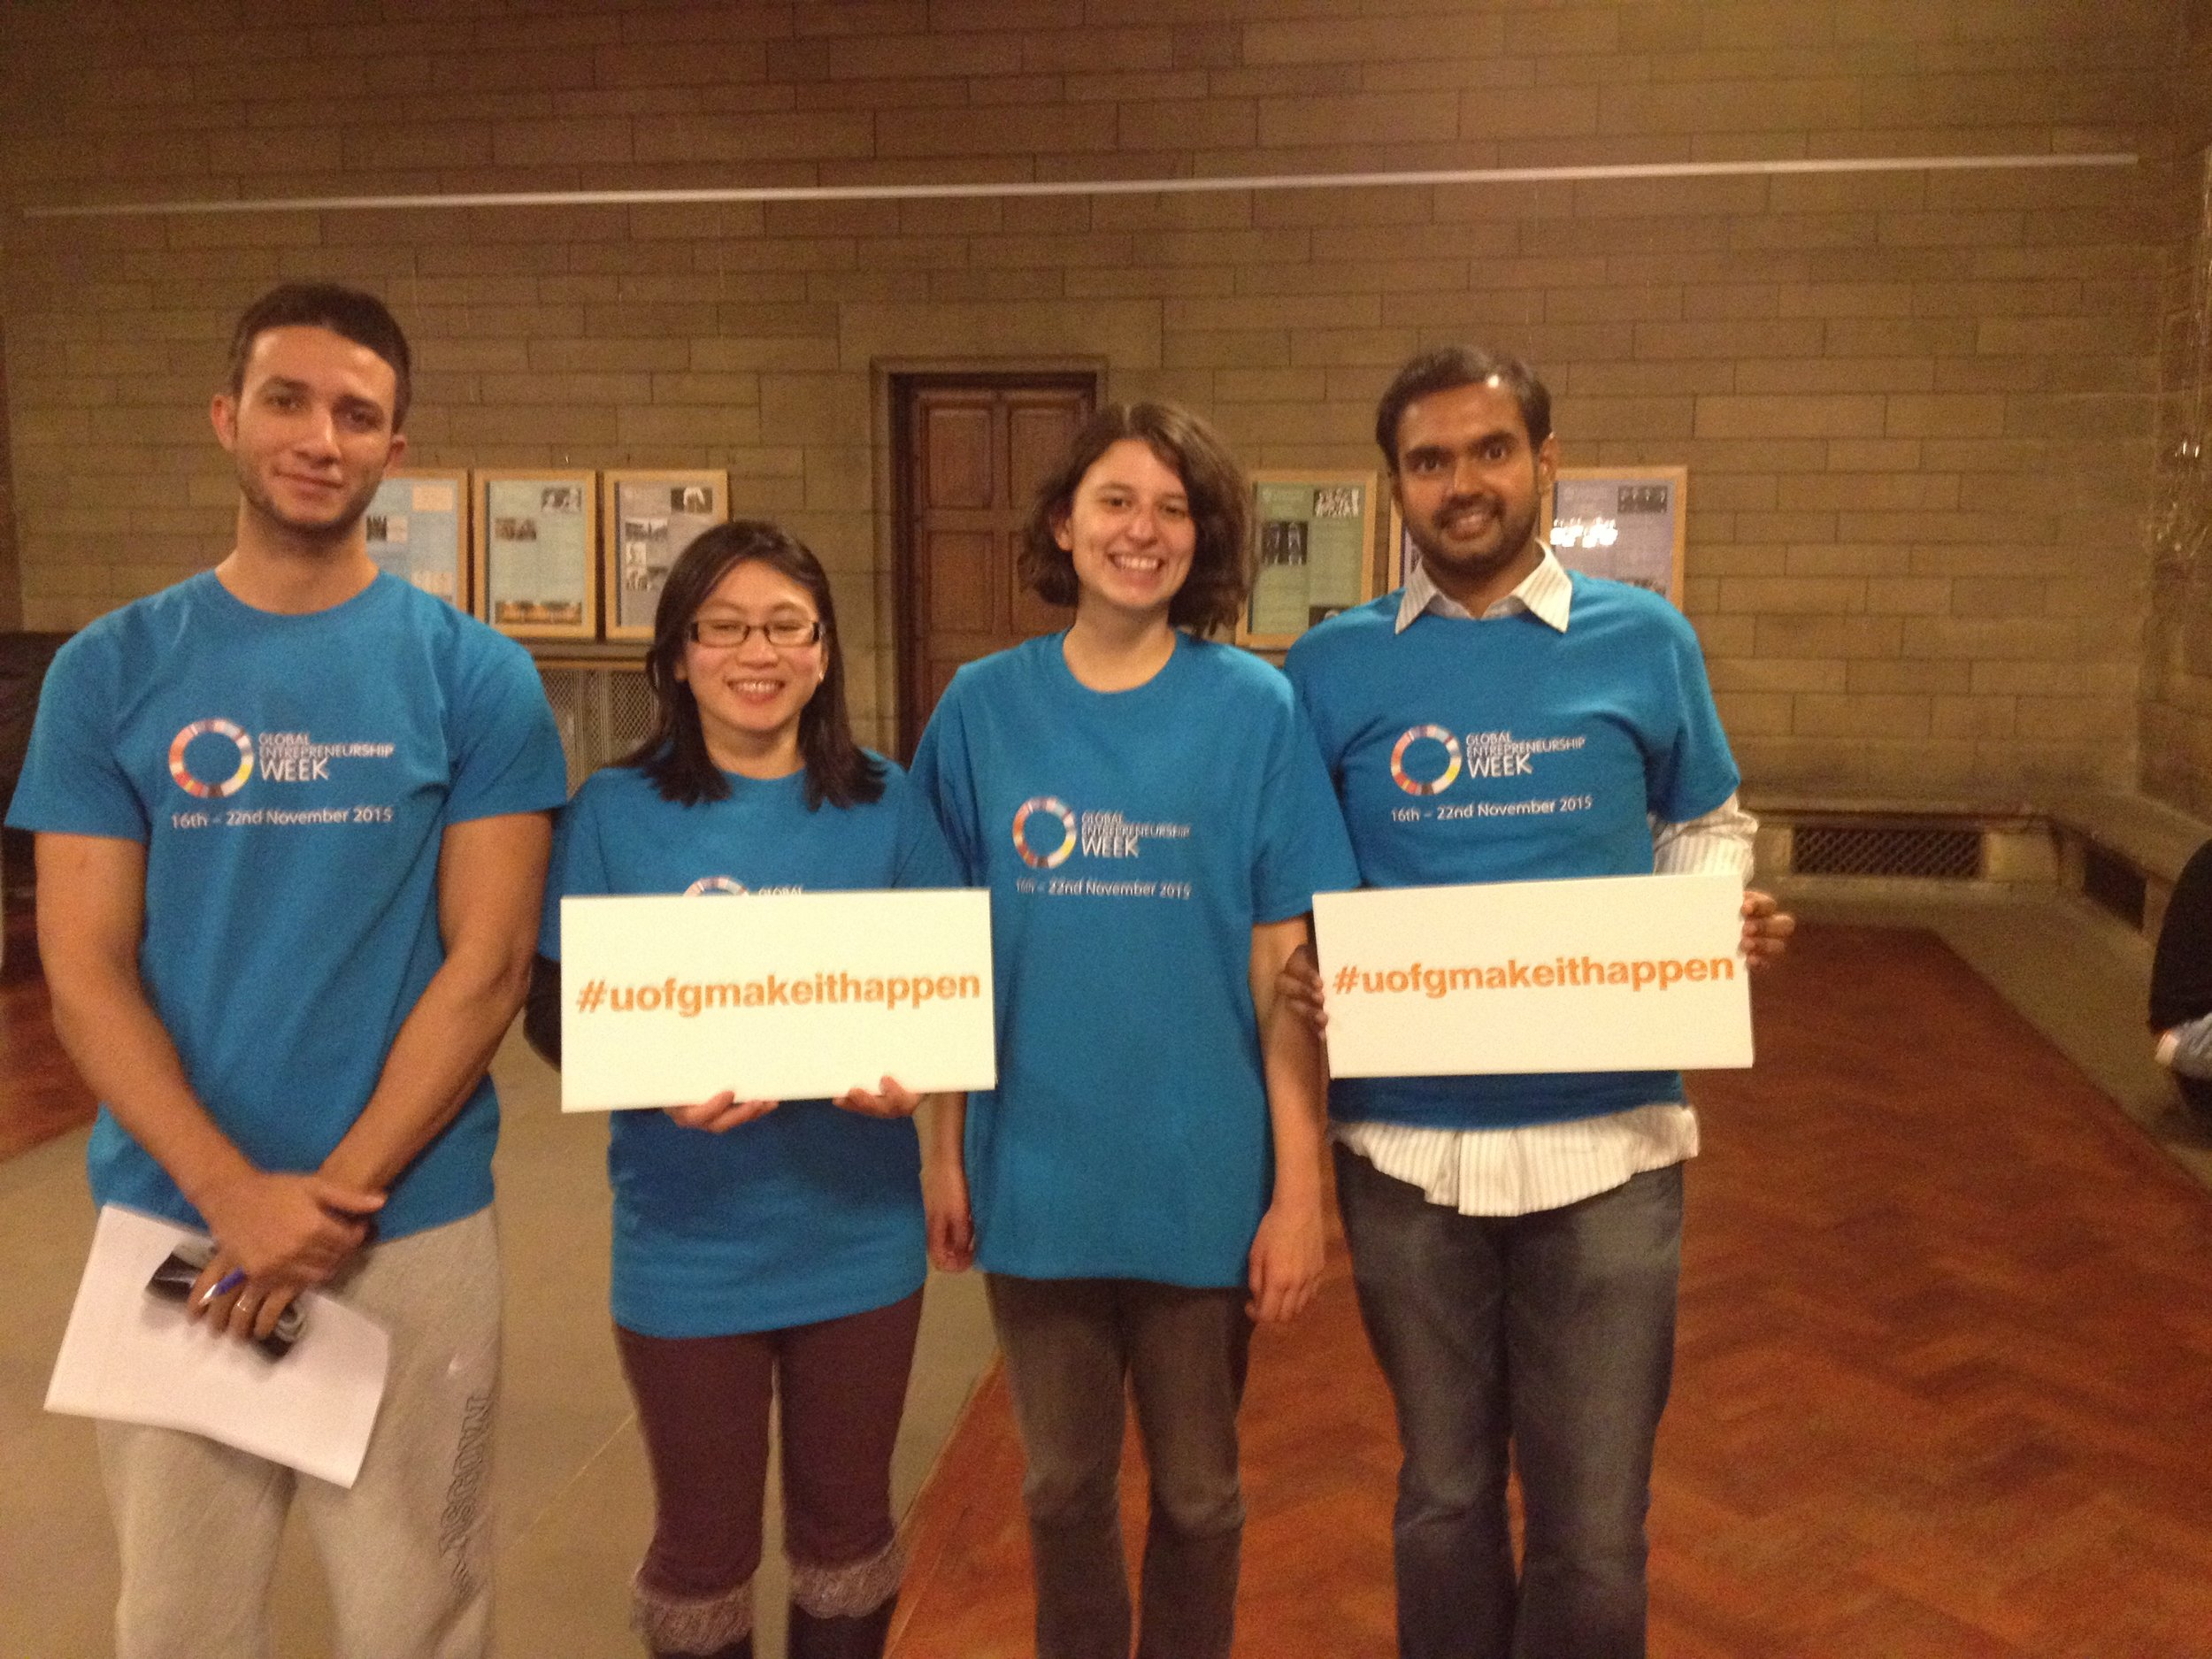 GEW15 volunteers wearing the bright blue branded T-shirts and signs displaying the #uofgmakeithappen hashtag